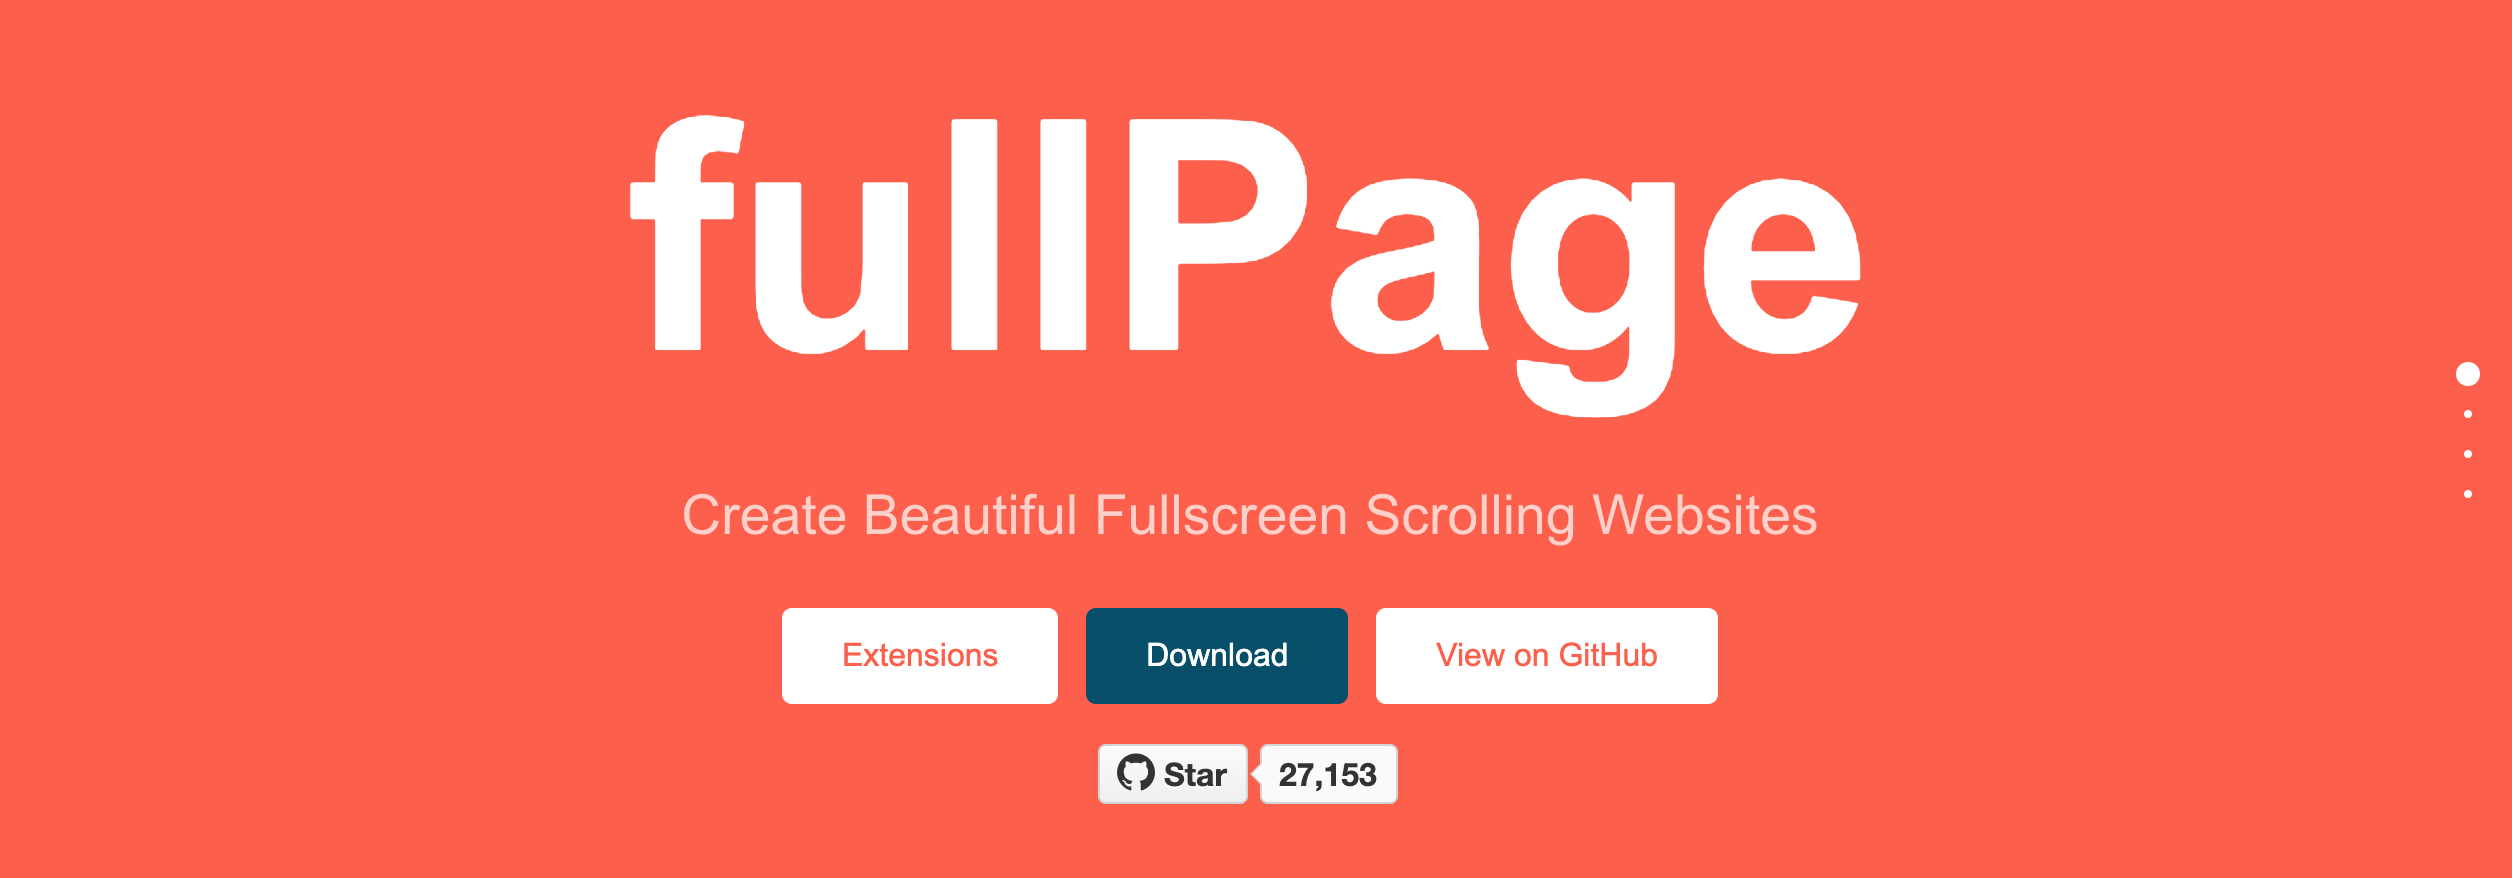 Page builder app to create a fullscreen scrolling